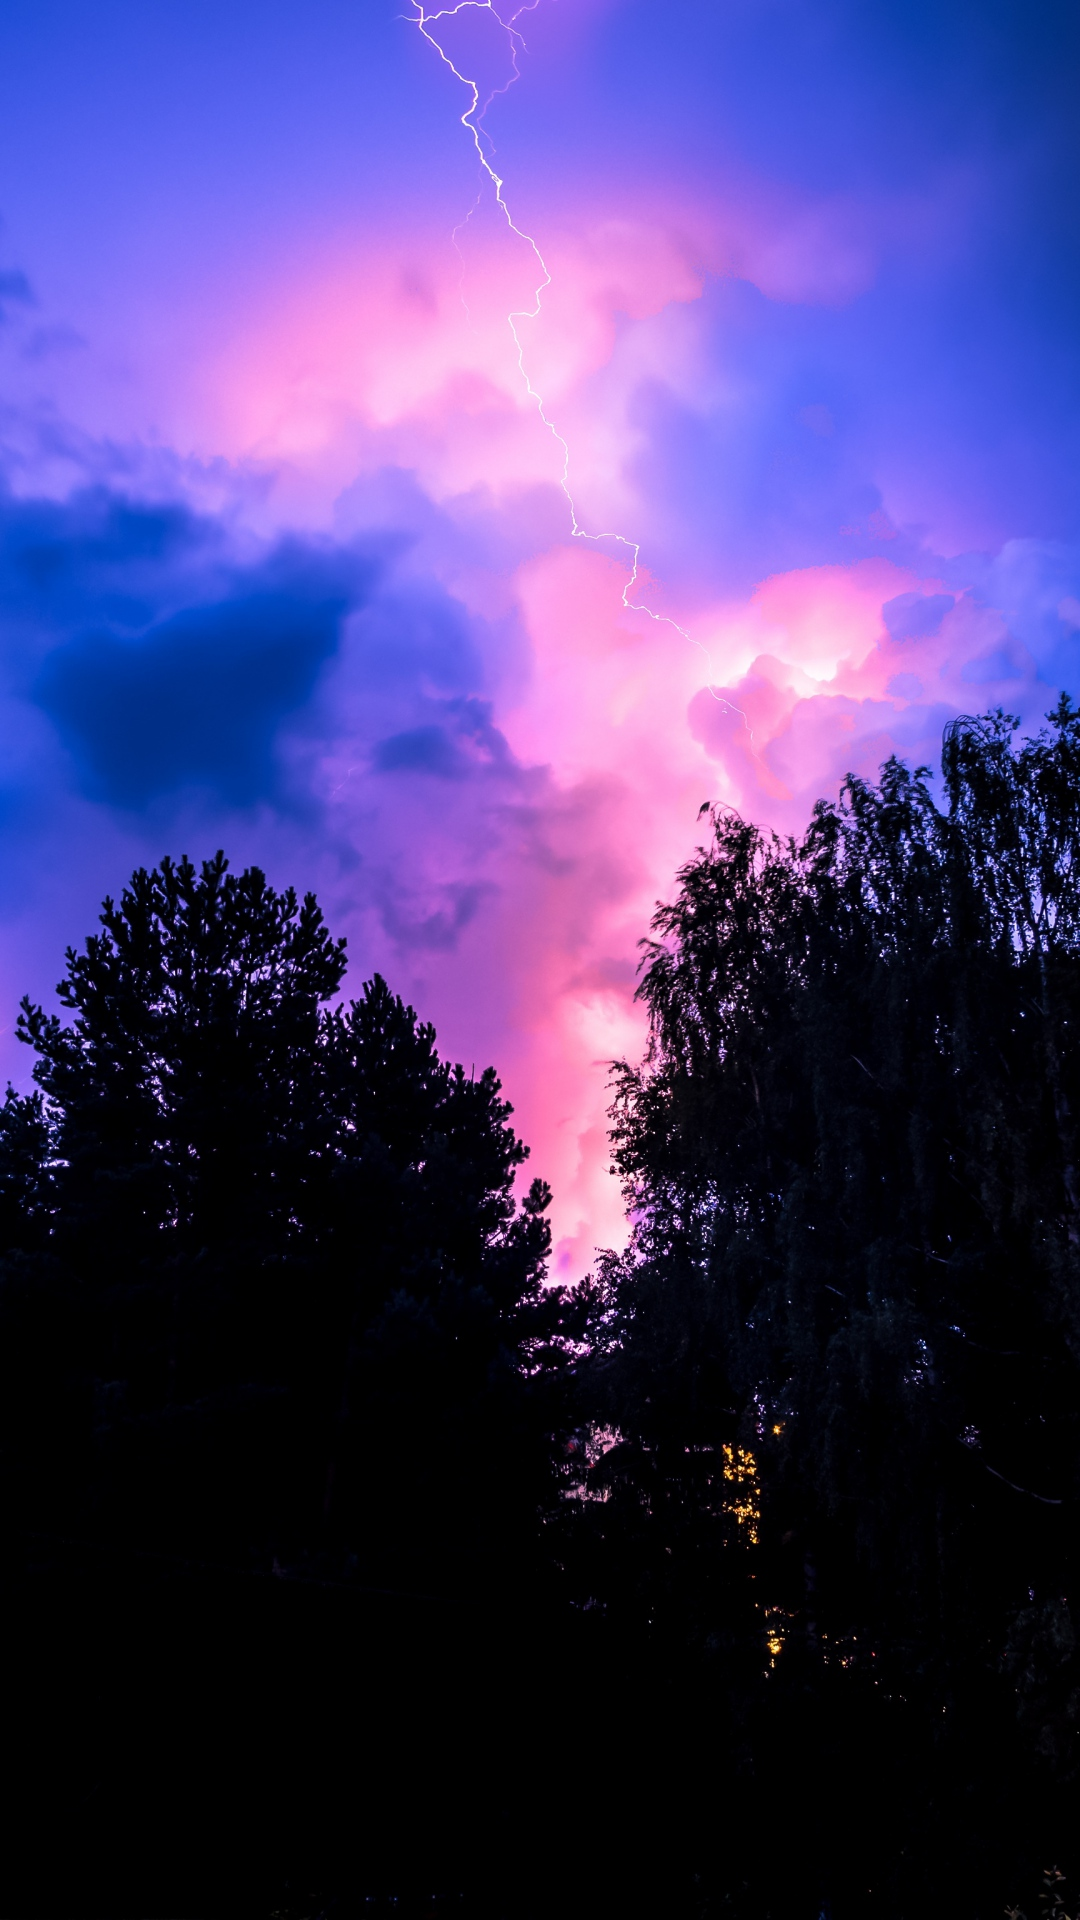 iphone wallpaper storm sky trees night Nature